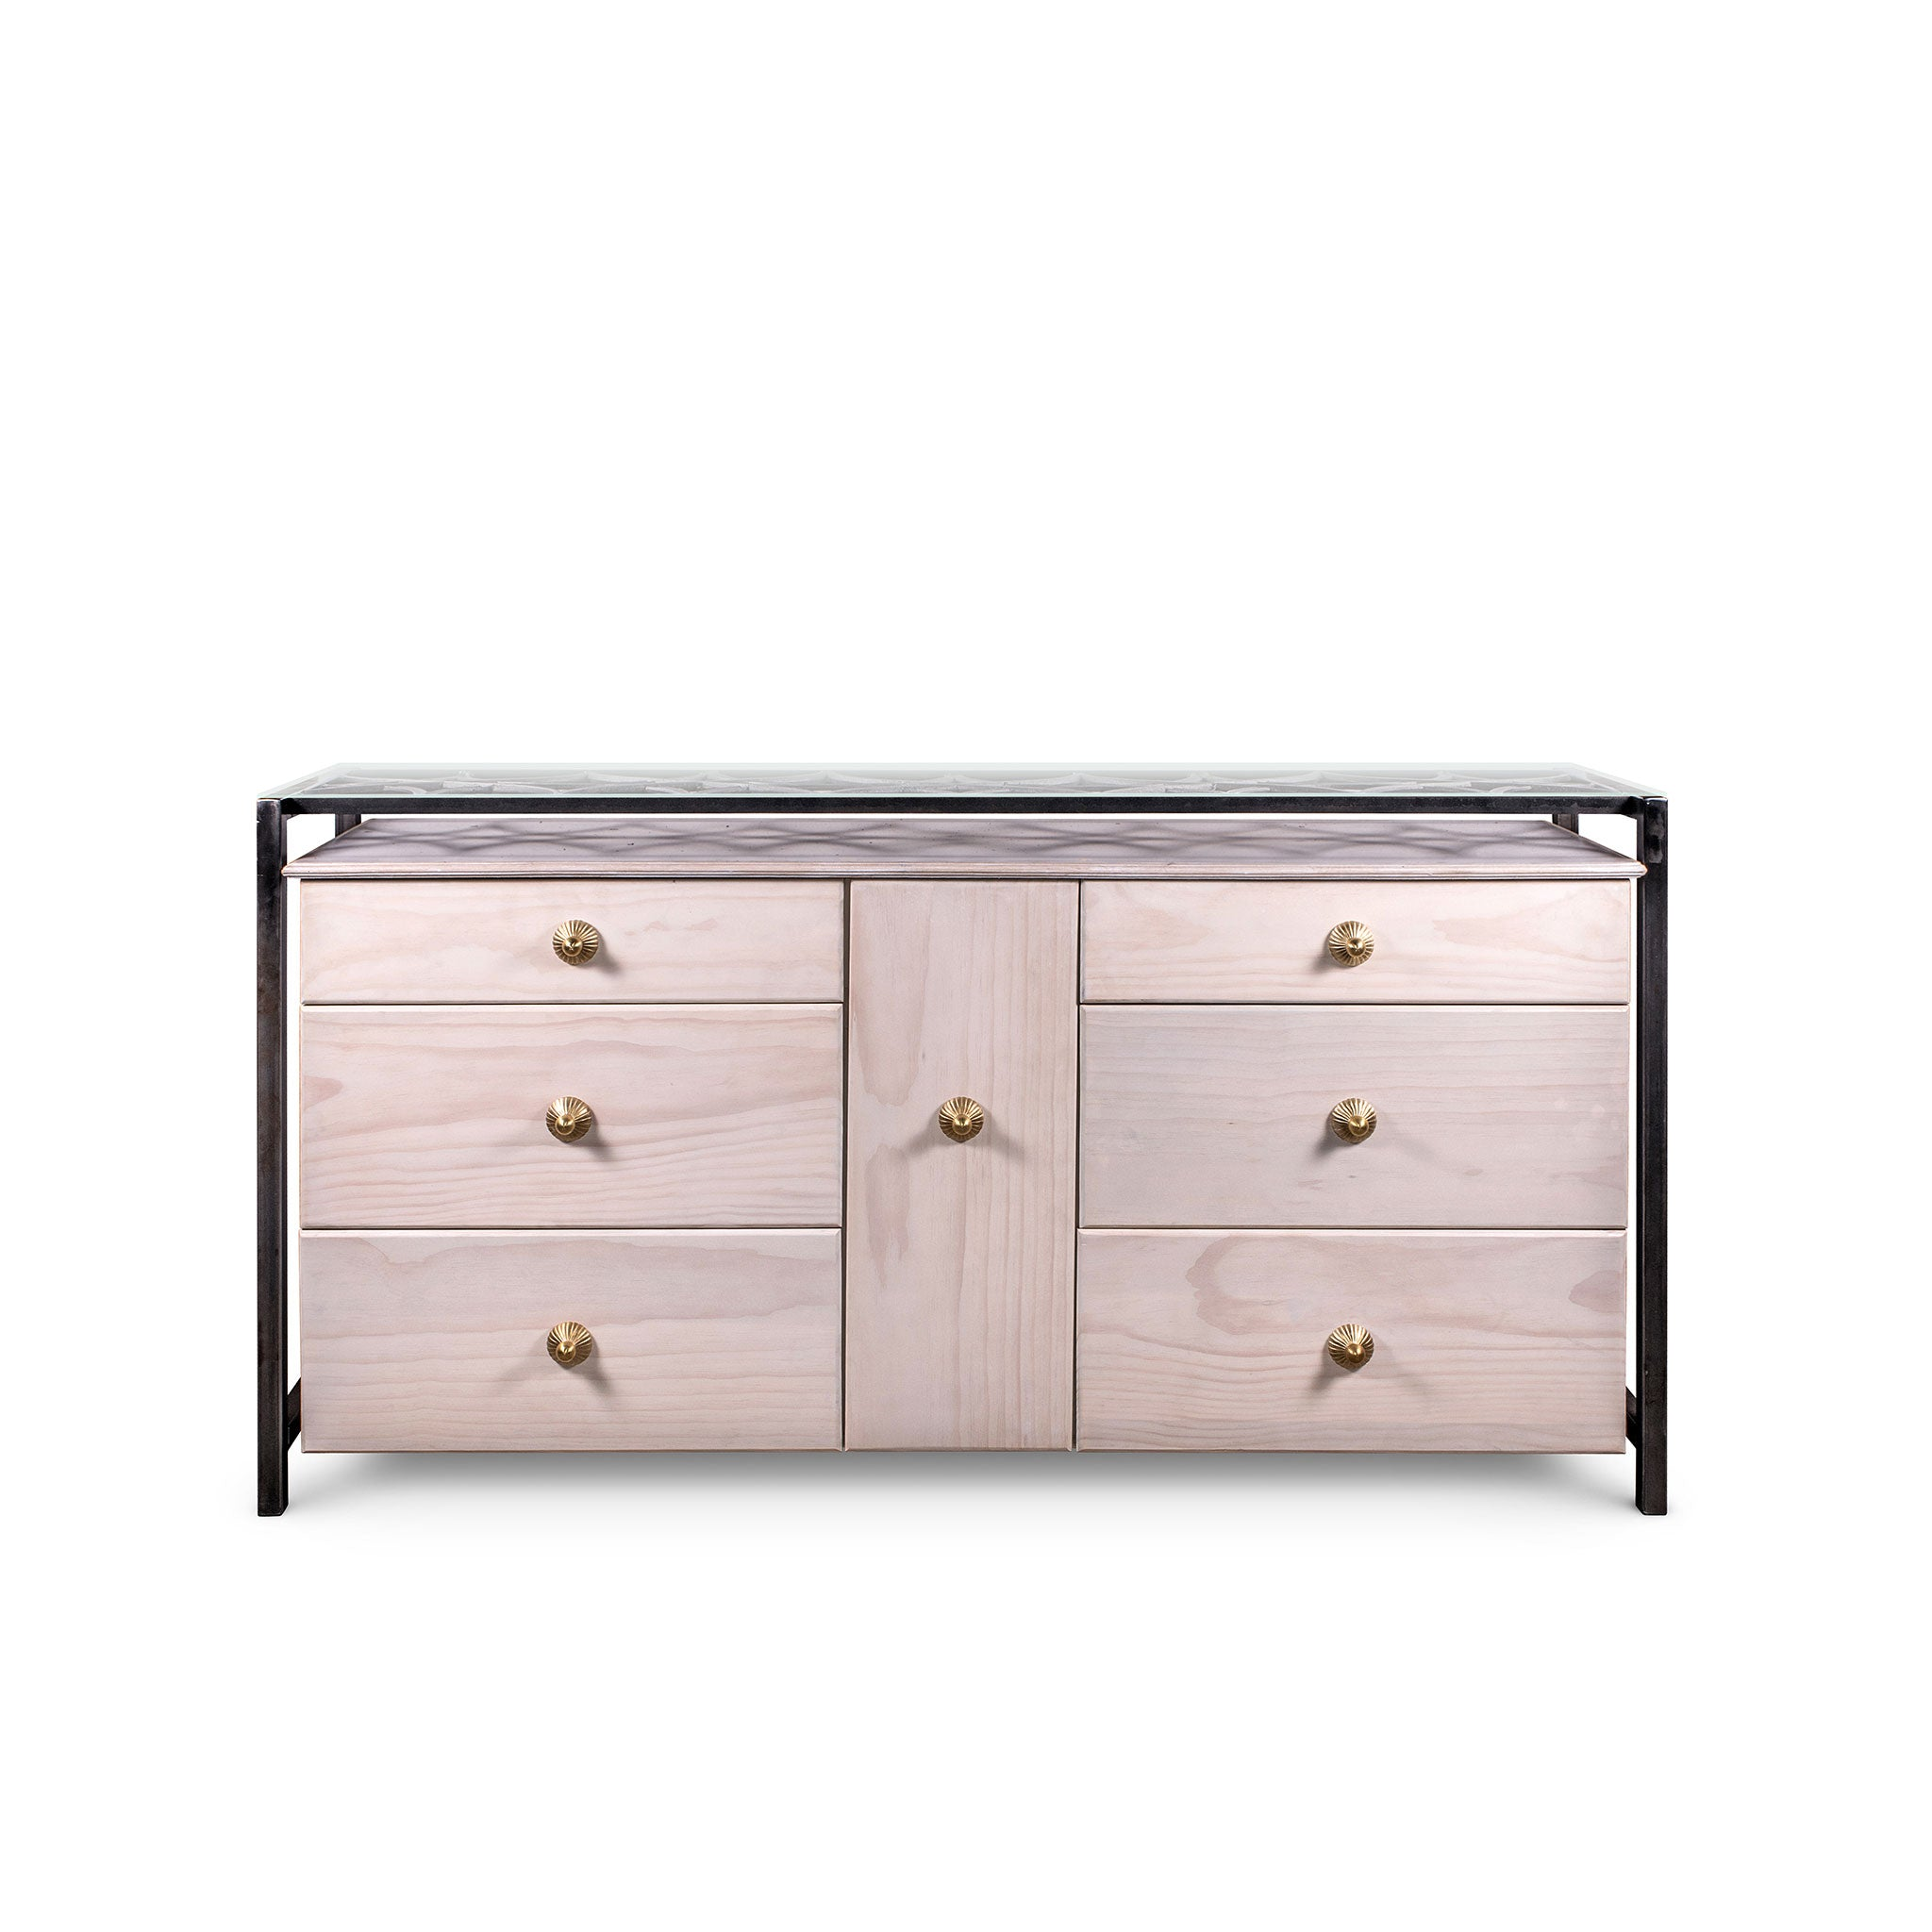 Ginger Dresser, White Wood, Metal, Finish Pewter Tones, Solid Brass, Crystals, Glass on Top by Luna Bella